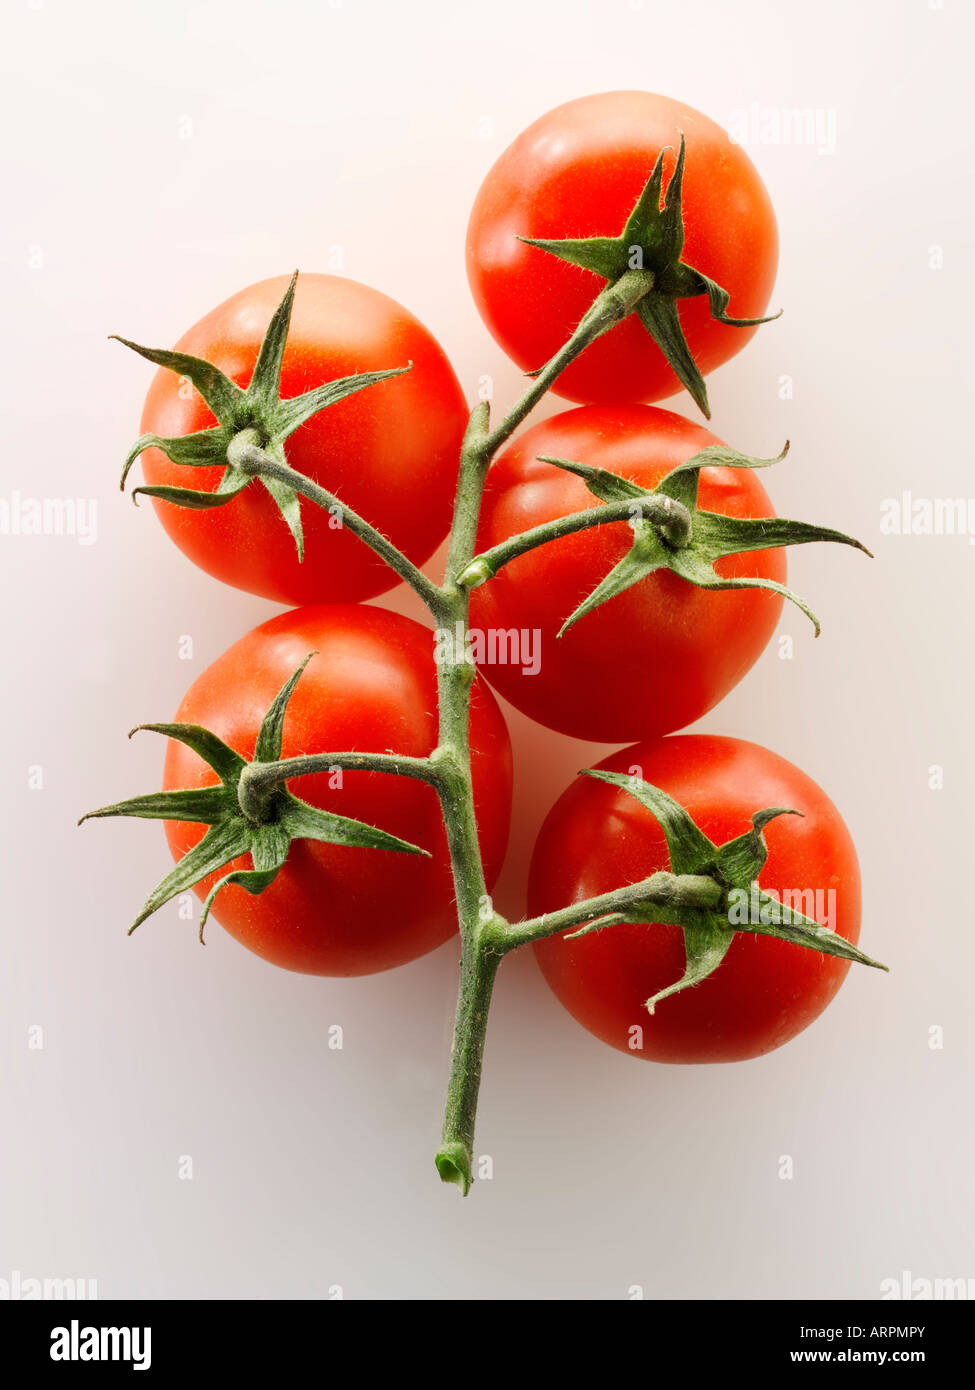 Raw fresh tomatoes on the vine - Stock Image